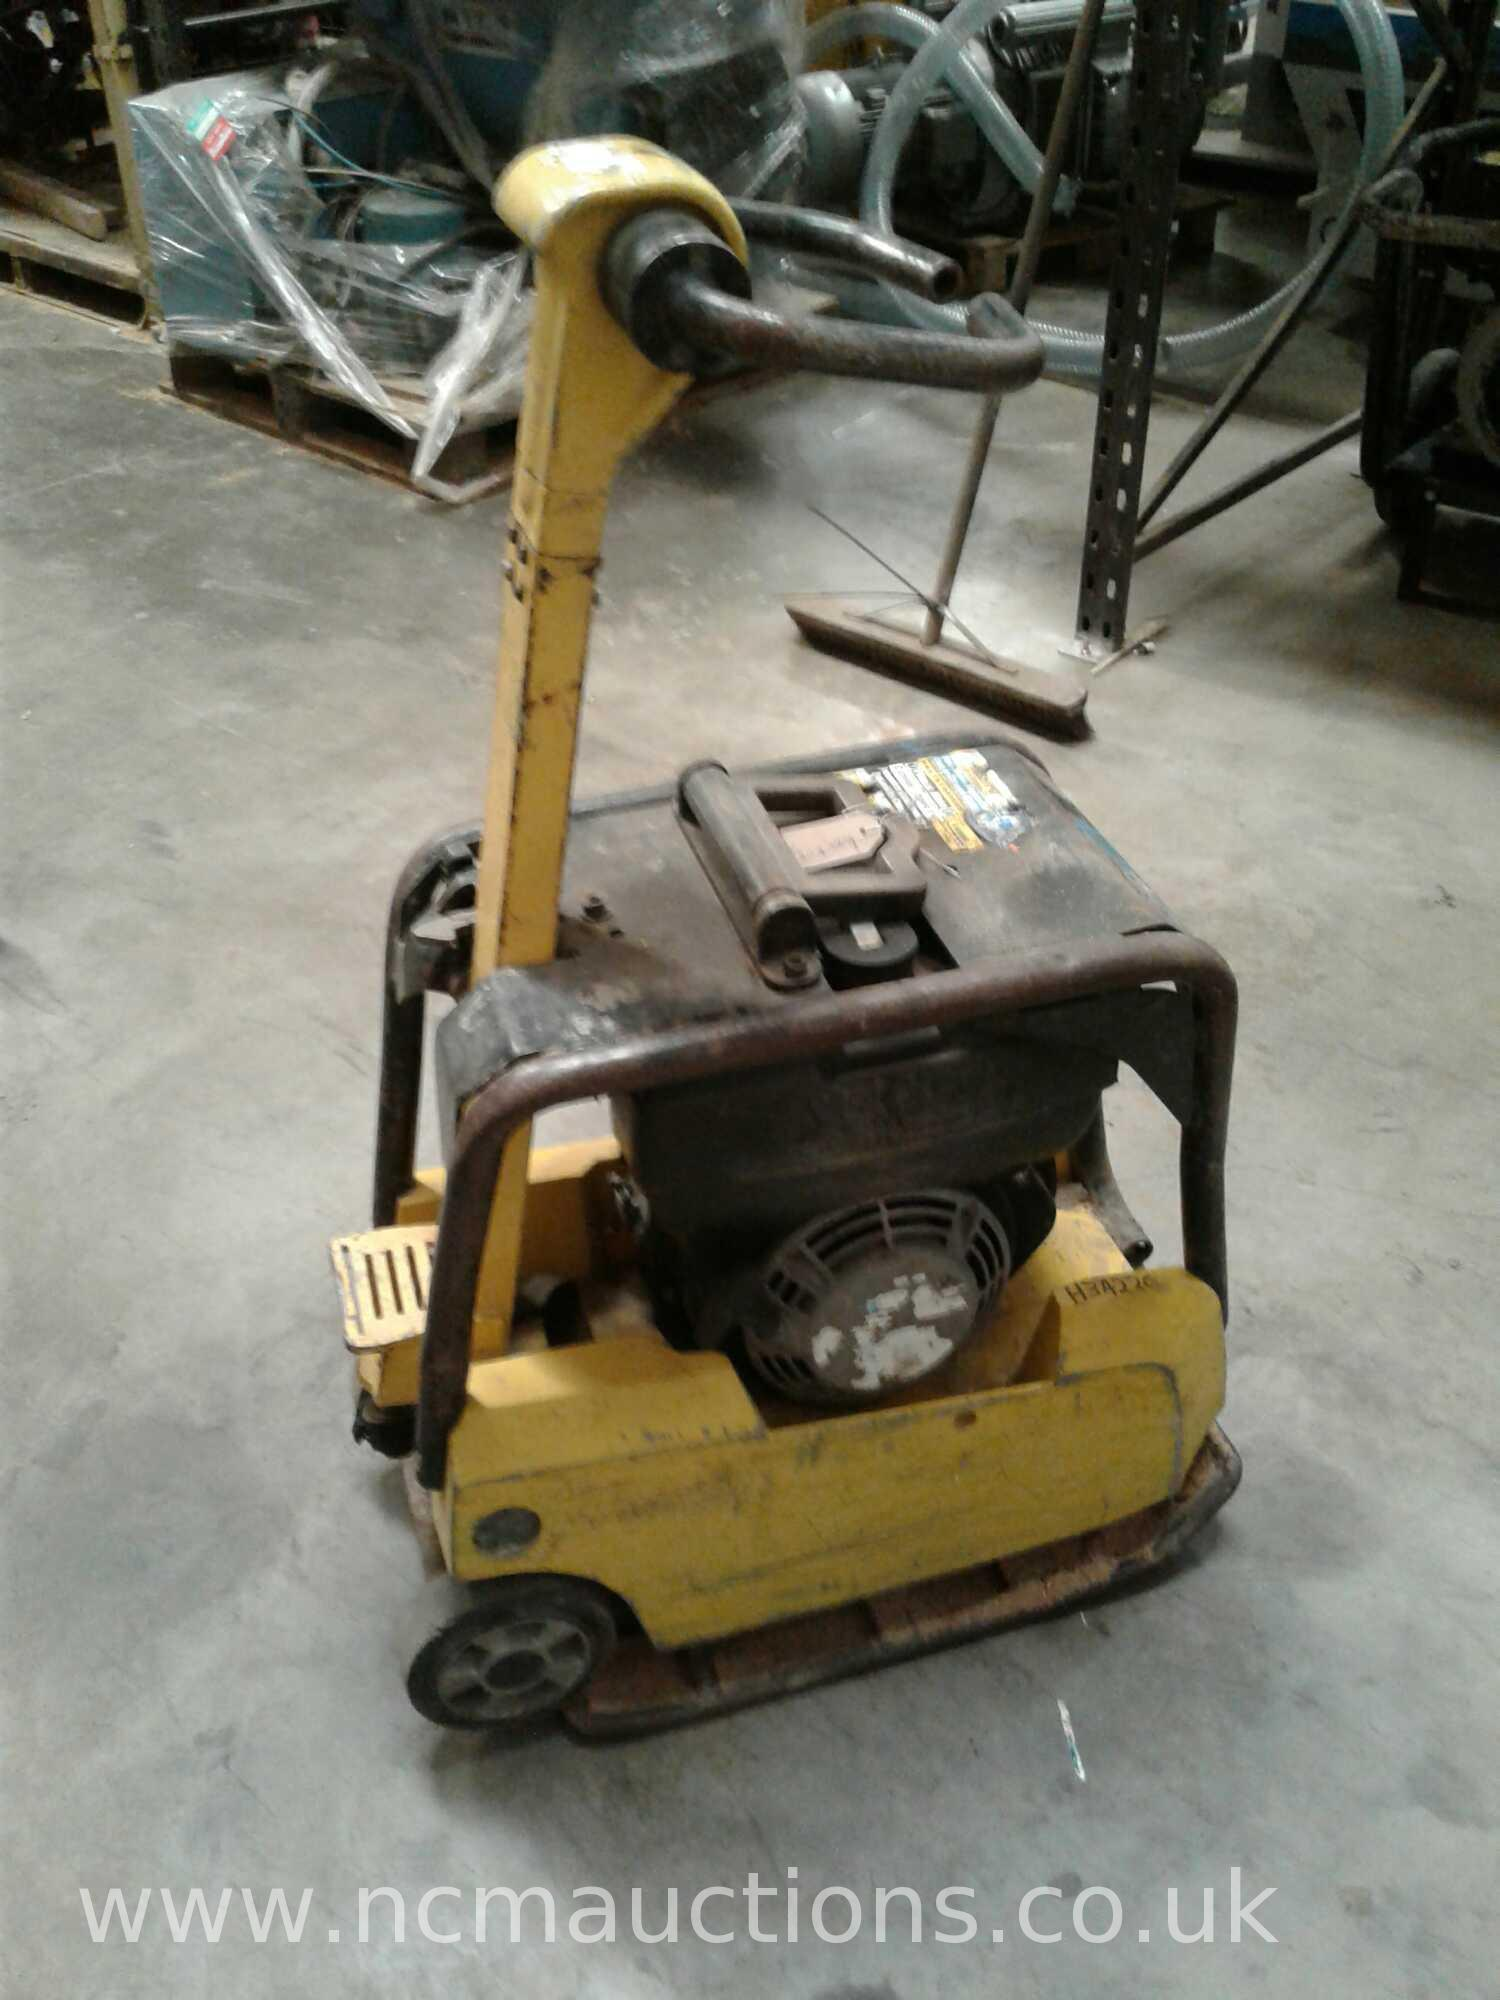 Lot 126 - Wacker neuson forward / reverse compaction plate